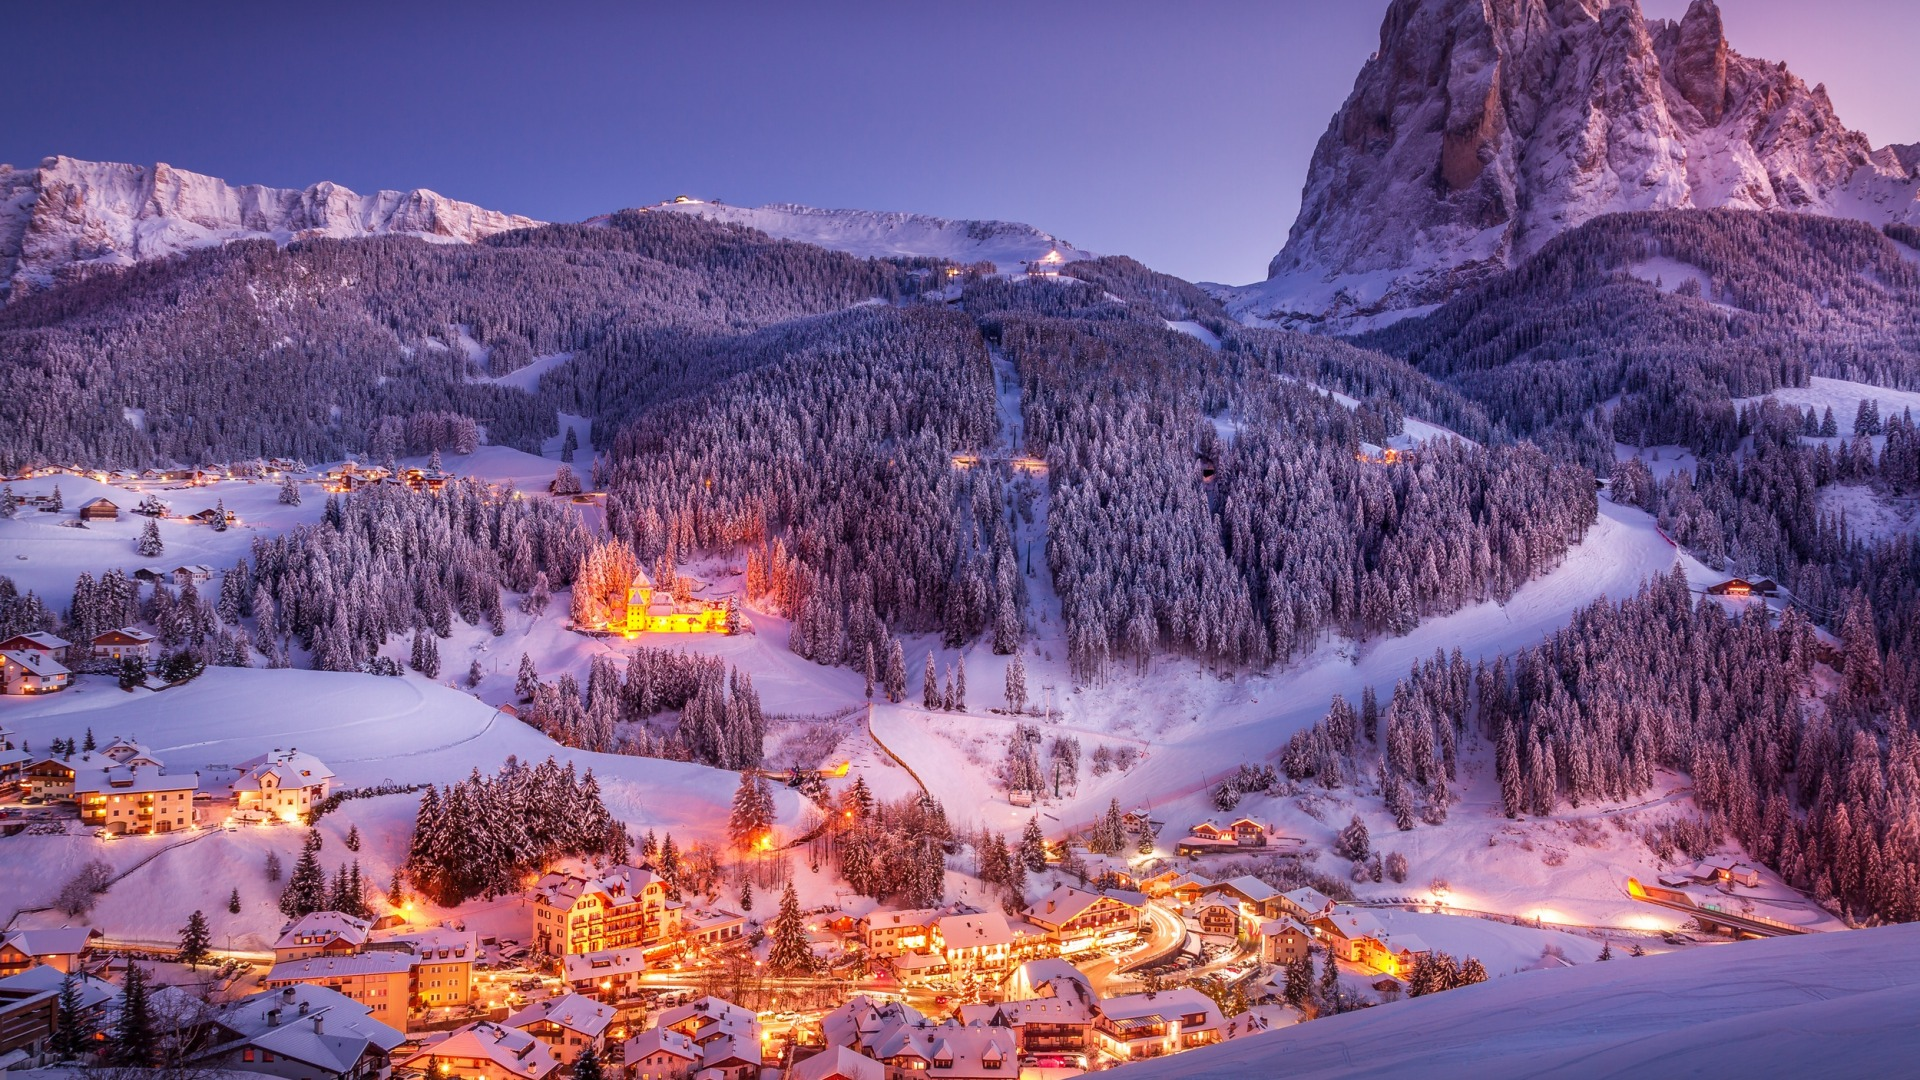 Download-winter-light-snow-mountains-night-the-evening-Alps-town-section-R-wallpaper-wpc9004498